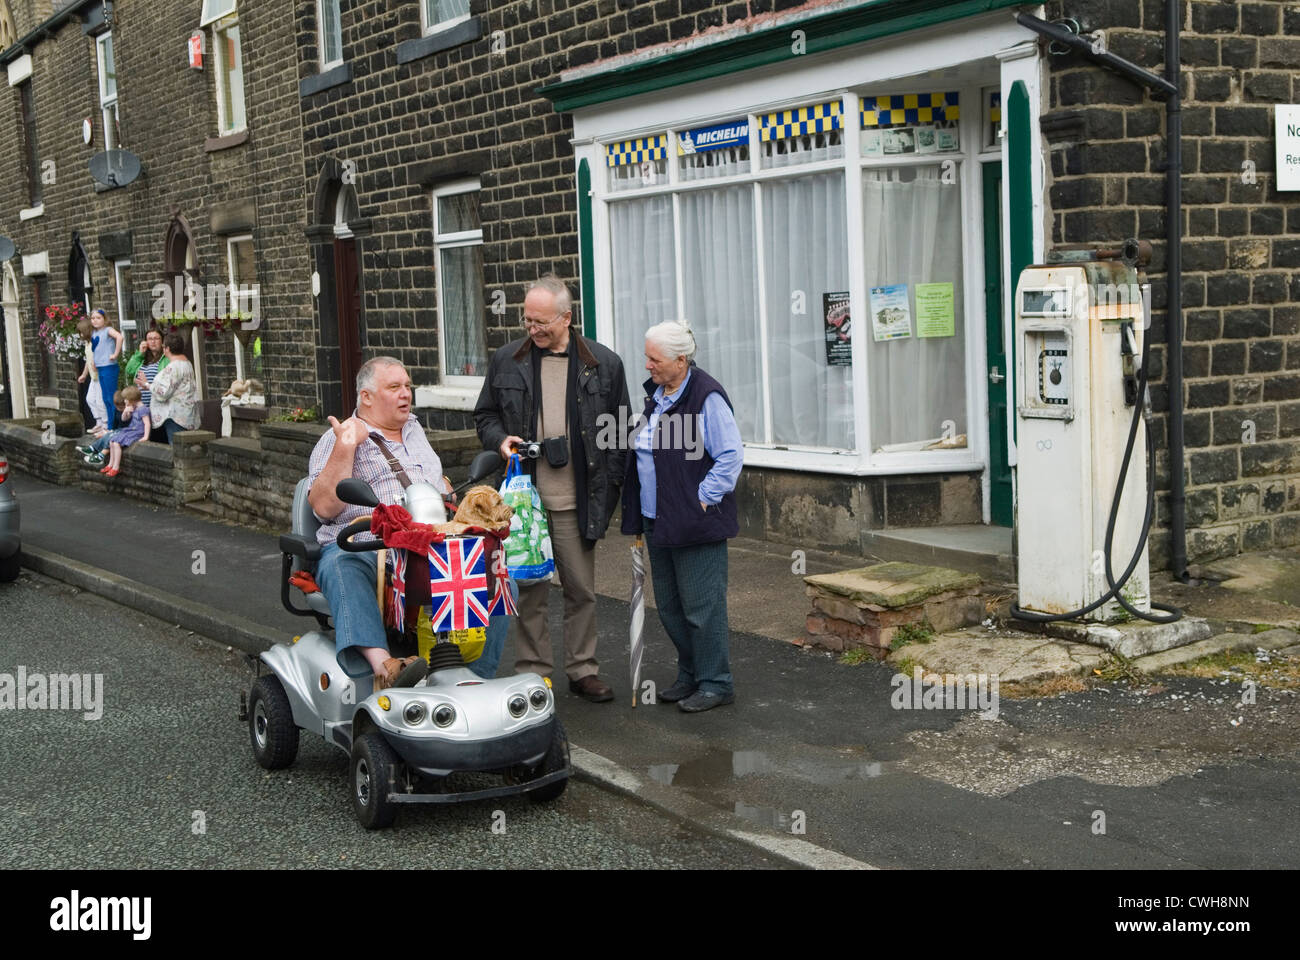 Mobility vehicle disabled man with dog using a mobility motorised decorated scooter talking with friends  UK HOMER - Stock Image